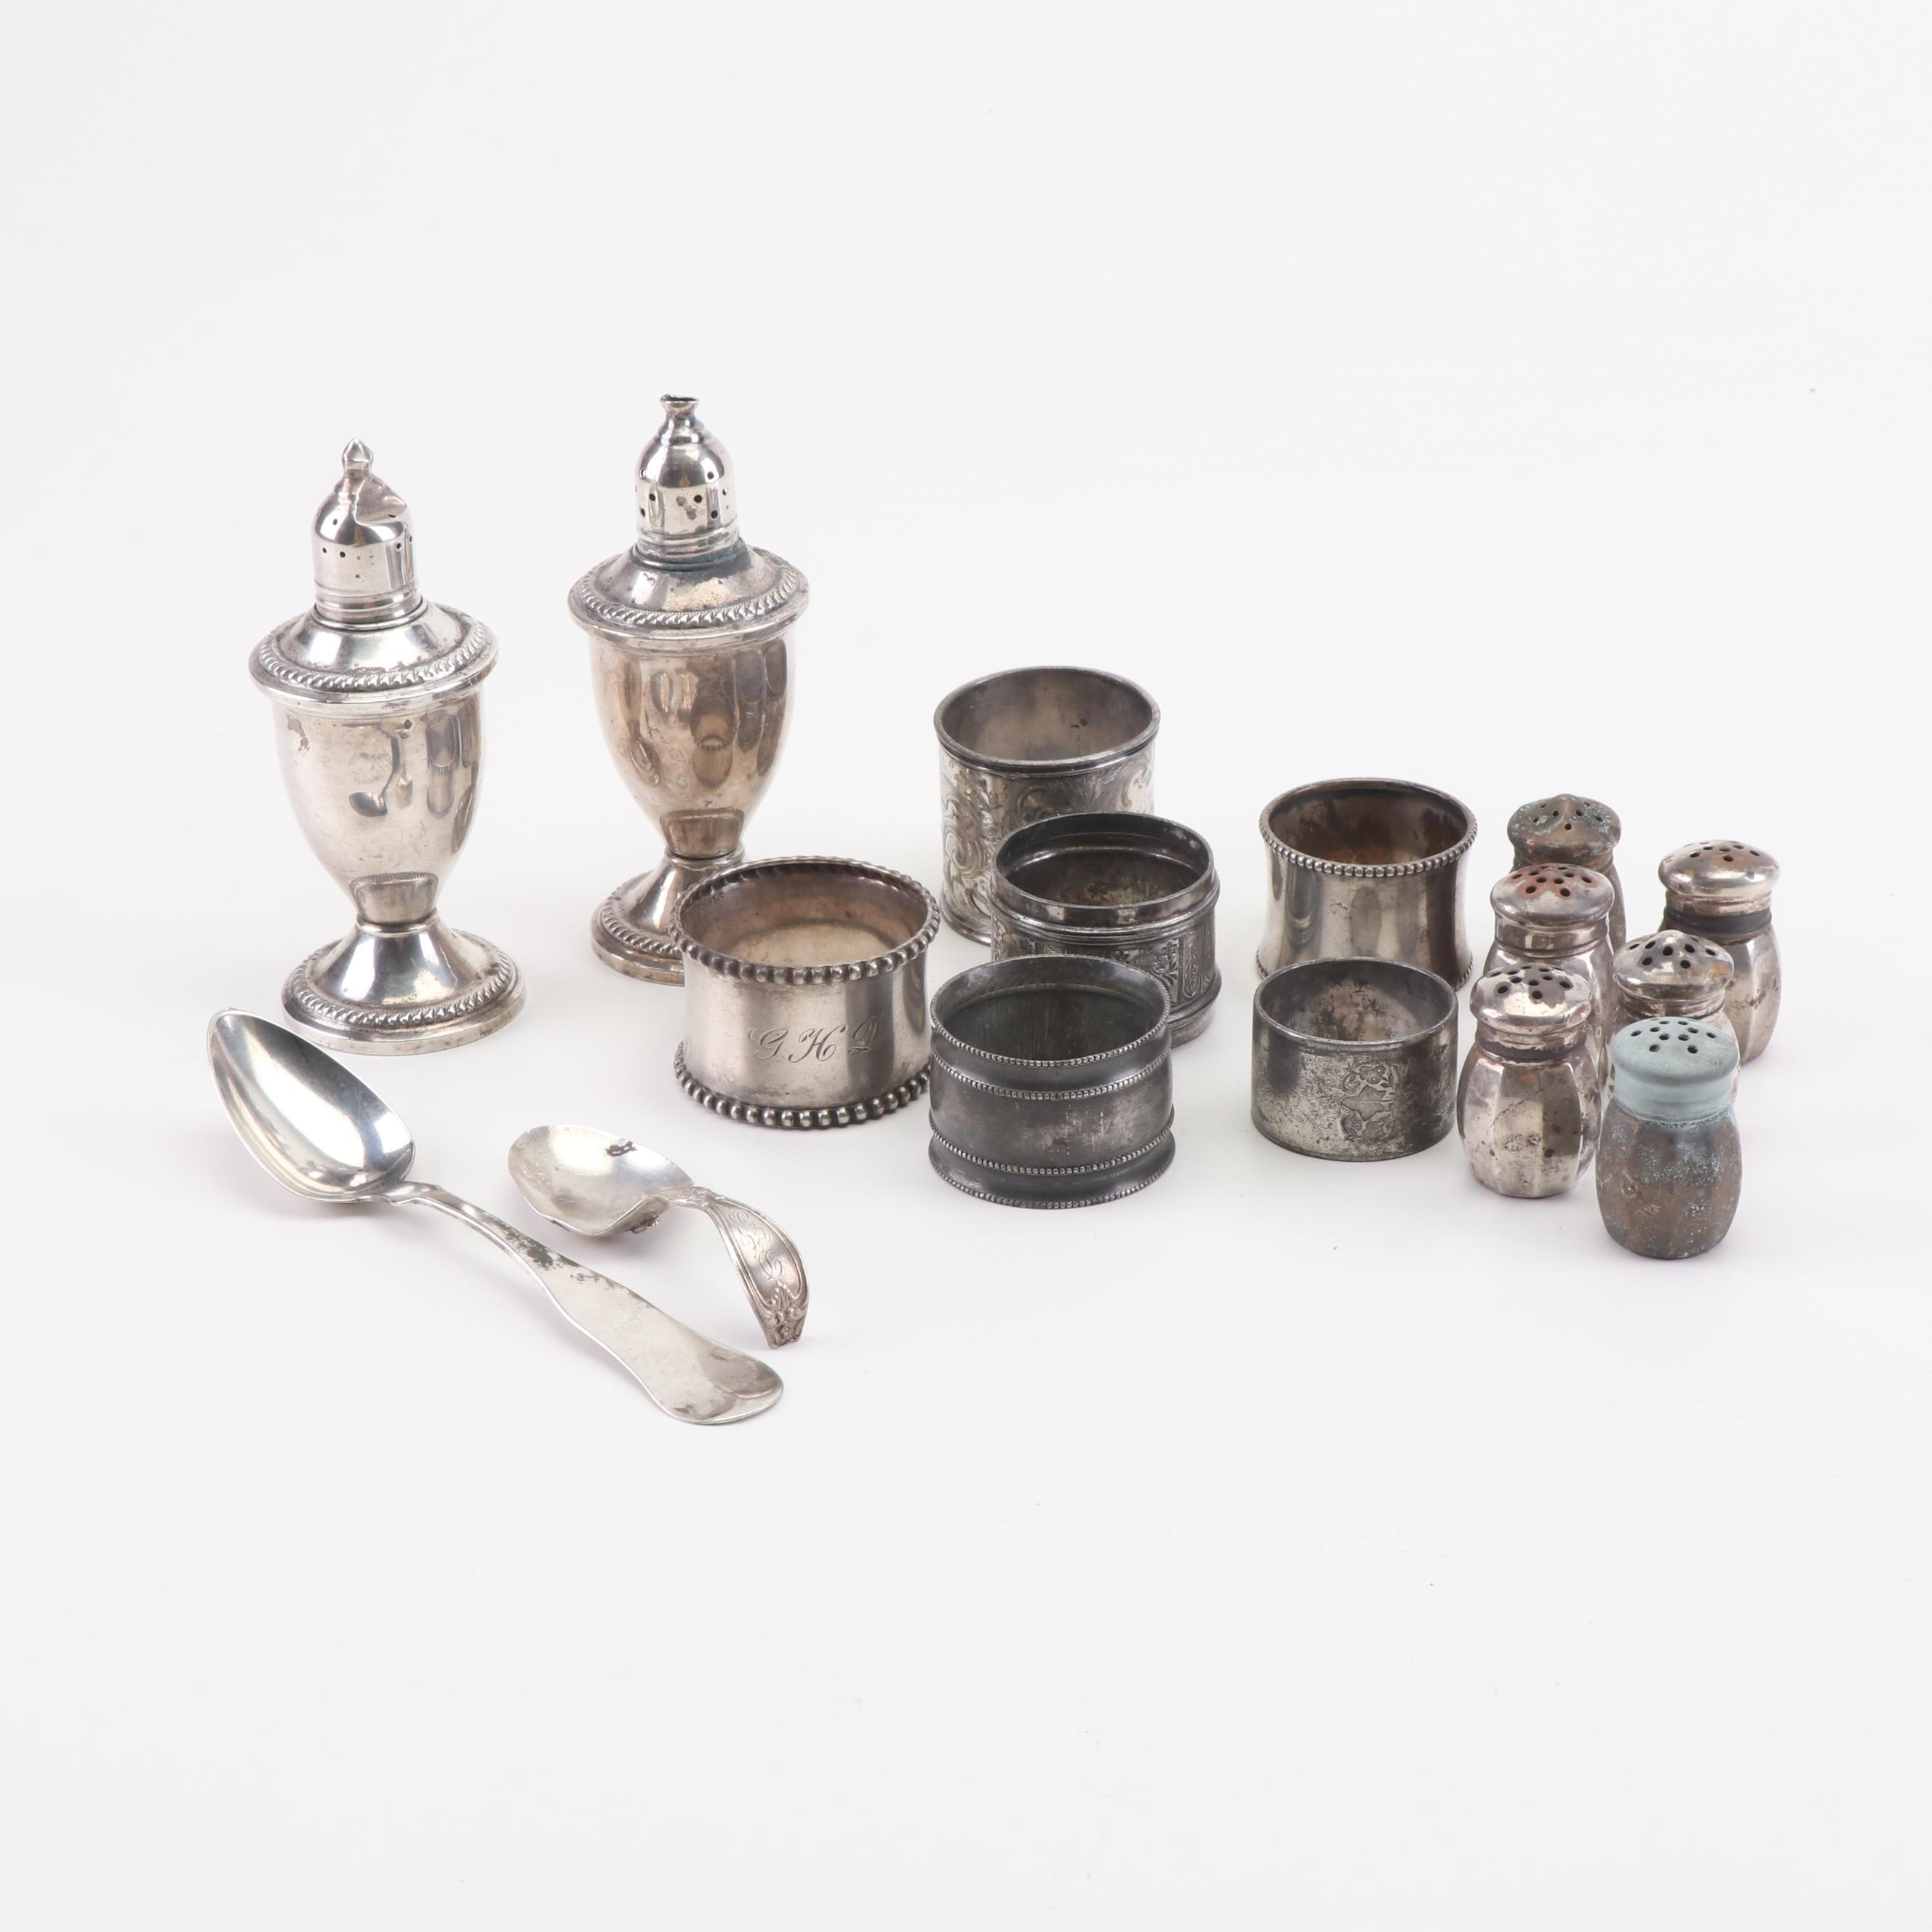 Duchin Creations Weighted Sterling Shaker Set with Other Silver Tableware